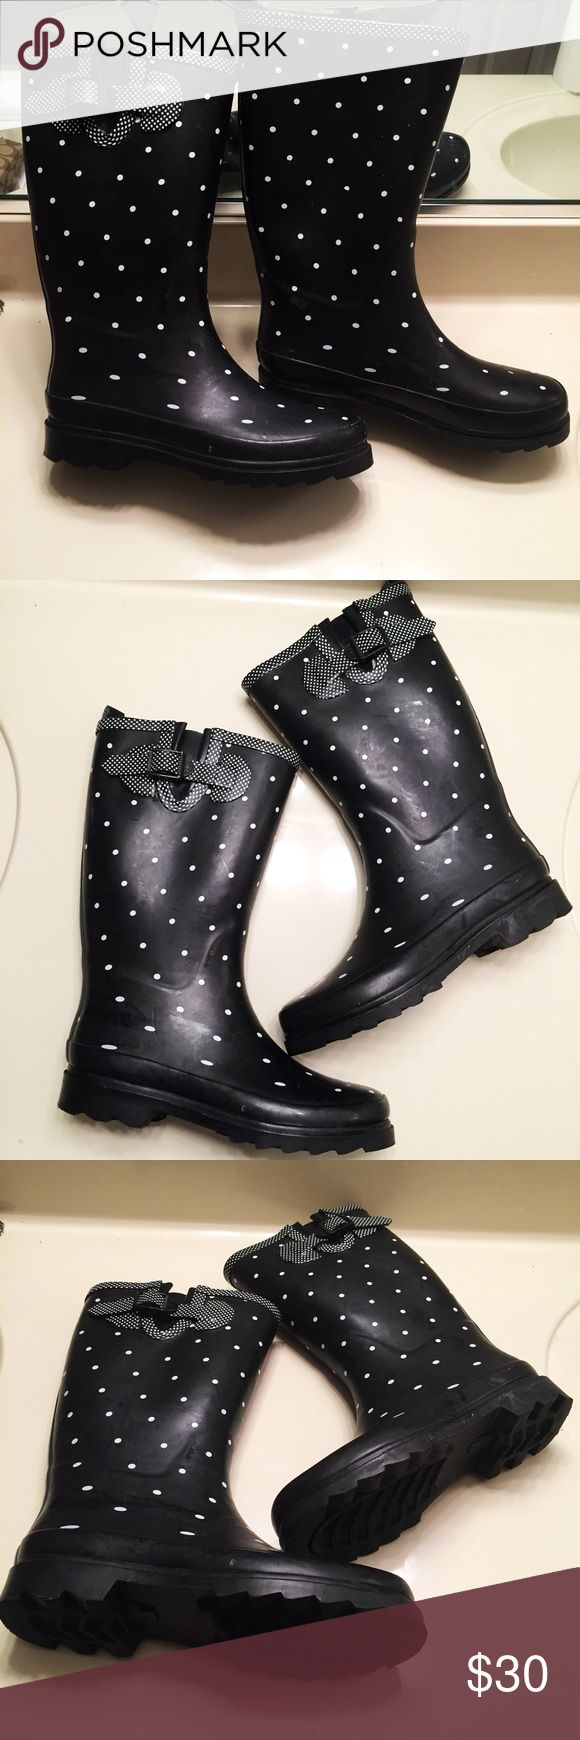 Black and white polka dot rain boots size 9 Black and white rubber polka dot rain boots women's size 9. Have been worn once but are in excellent condition Shoes Winter & Rain Boots